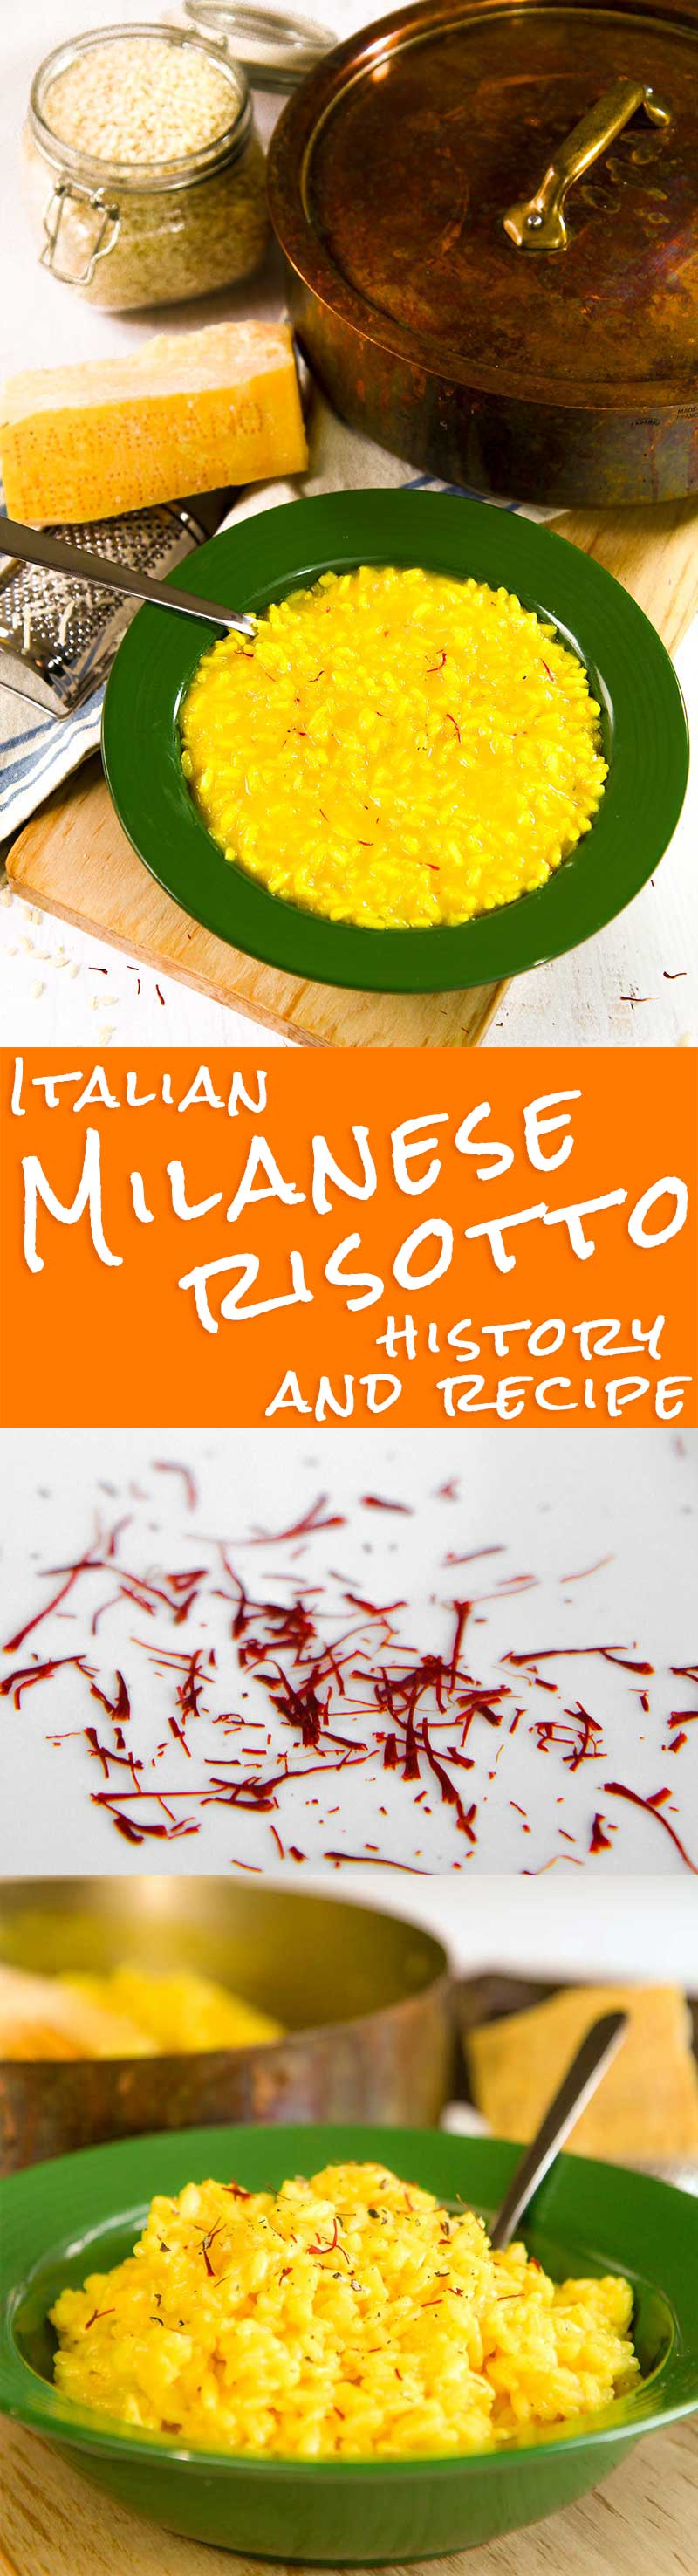 RISOTTO MILANESE recipe and history (Italian saffron rice)